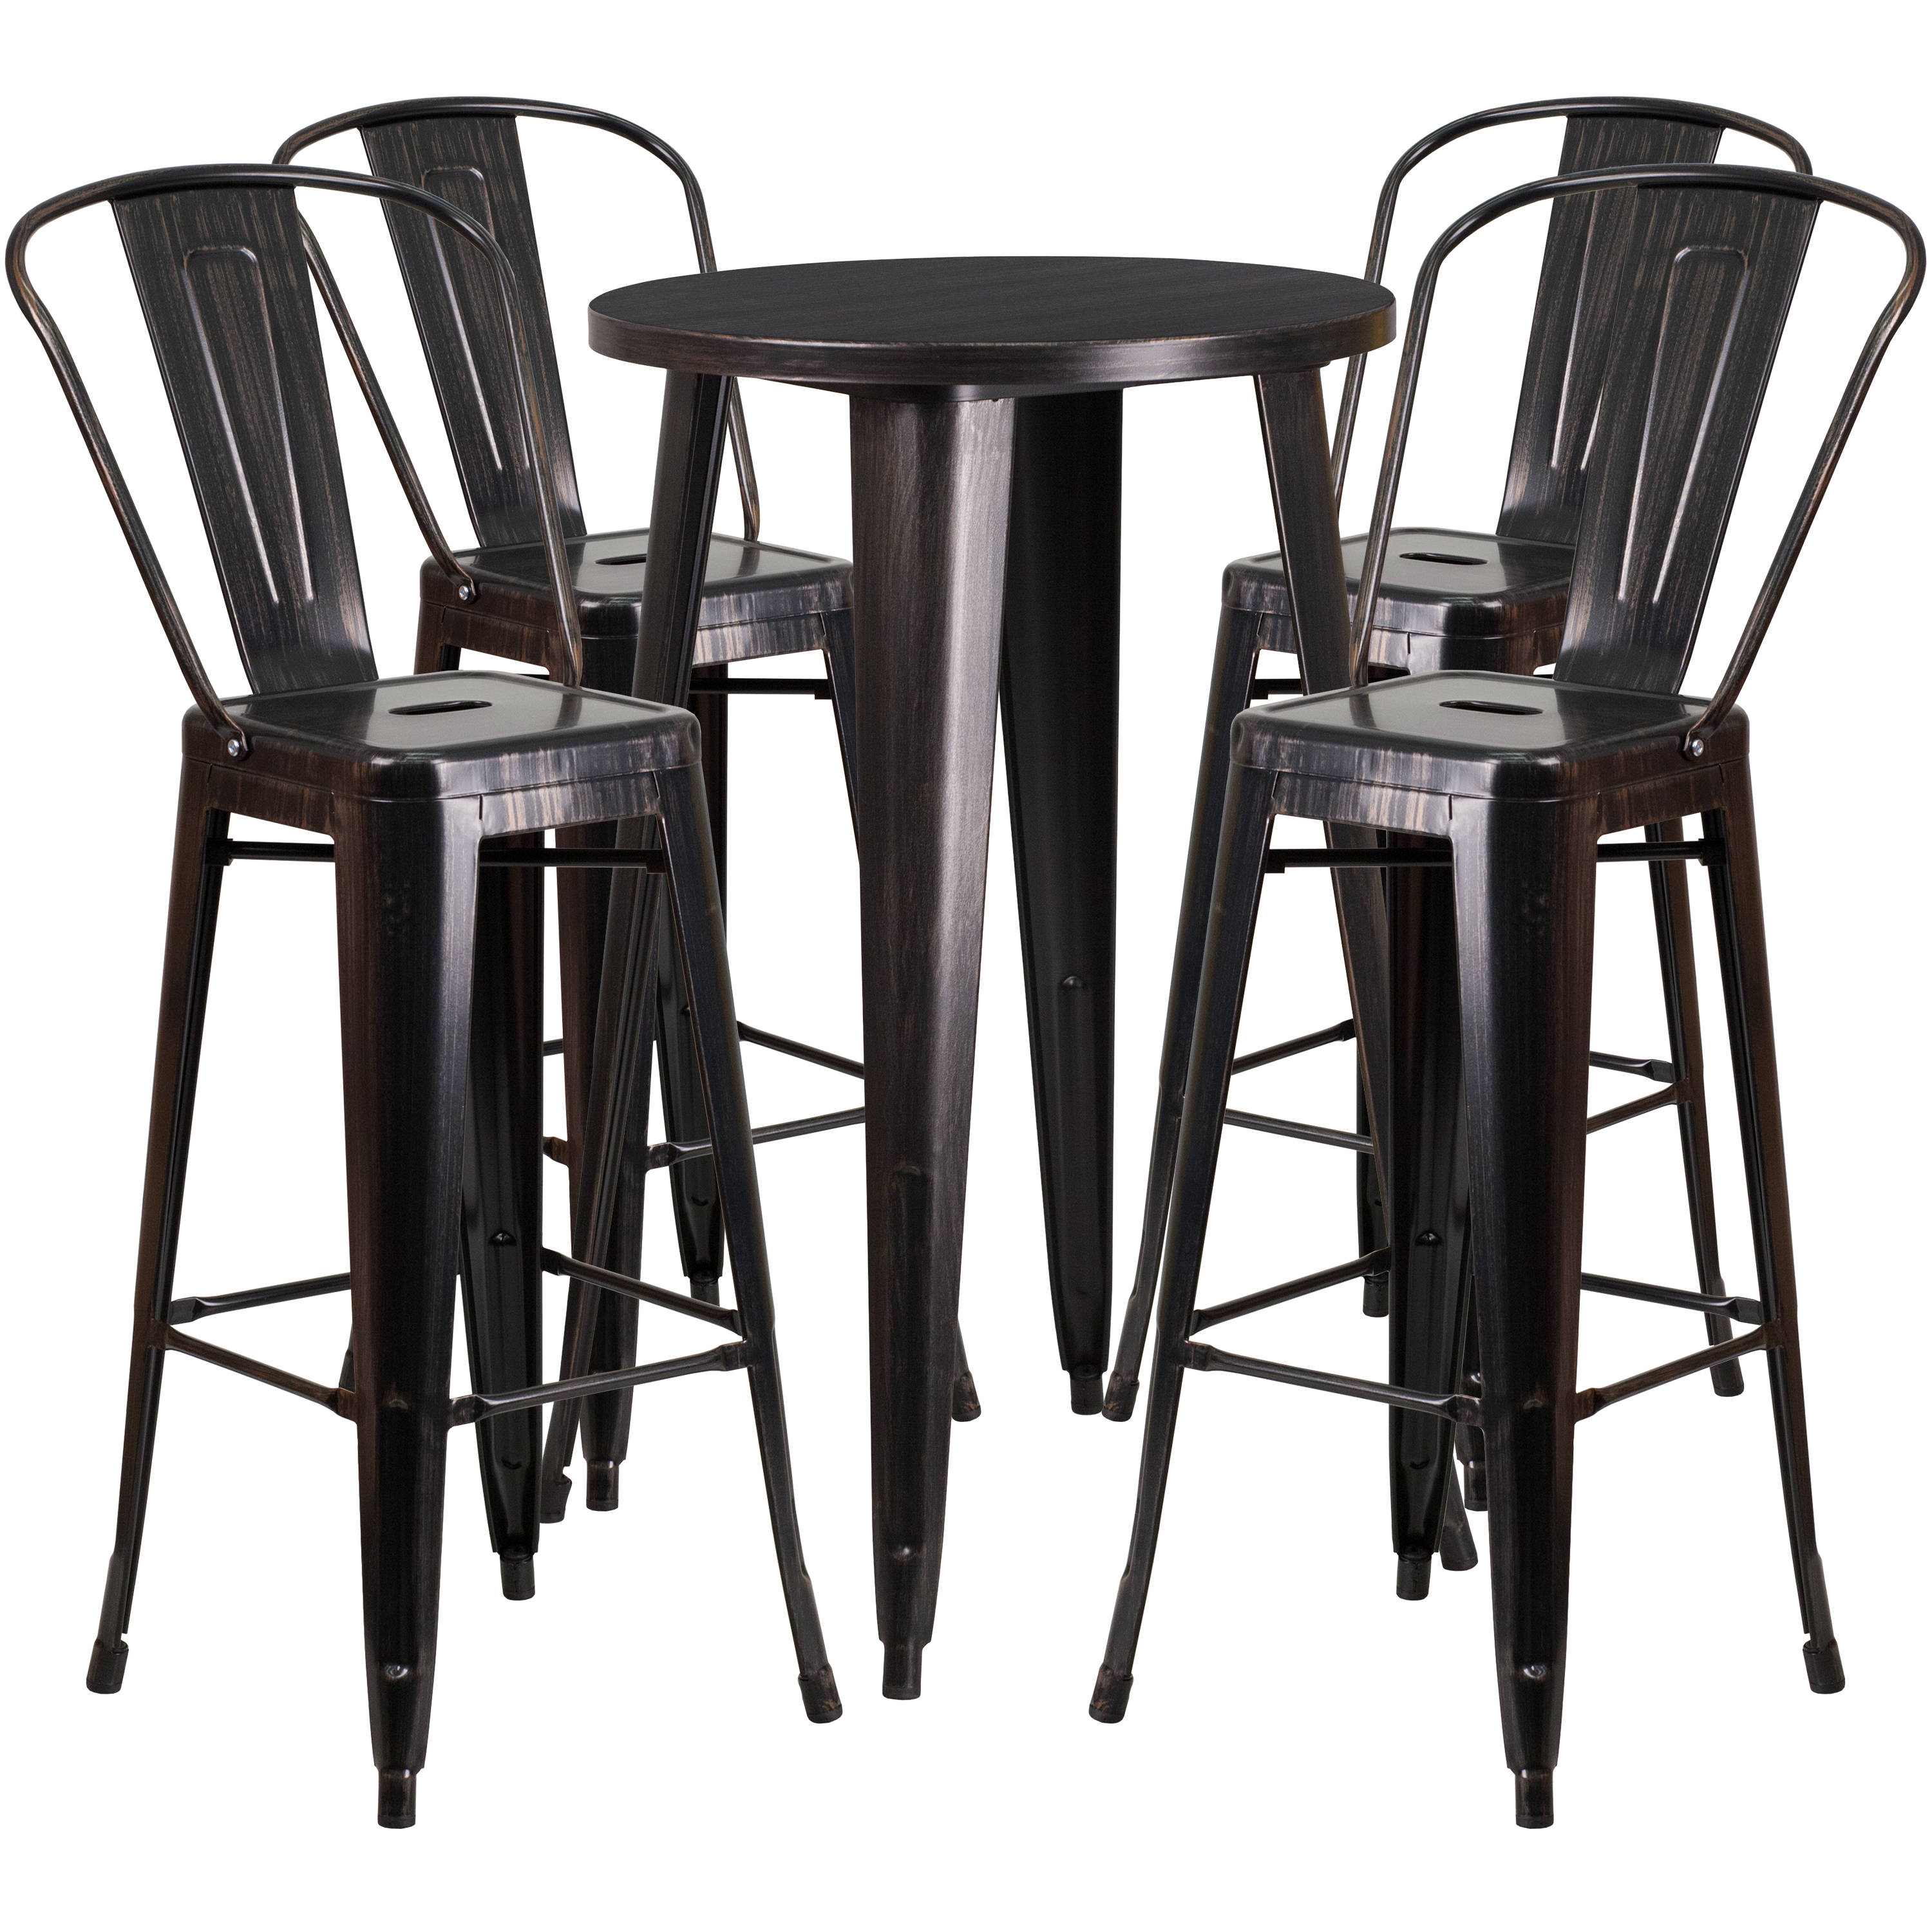 Astounding Flash Furniture Black Gold Indoor Outdoor Bar Table Set With 4 Cafe Stools Unemploymentrelief Wooden Chair Designs For Living Room Unemploymentrelieforg